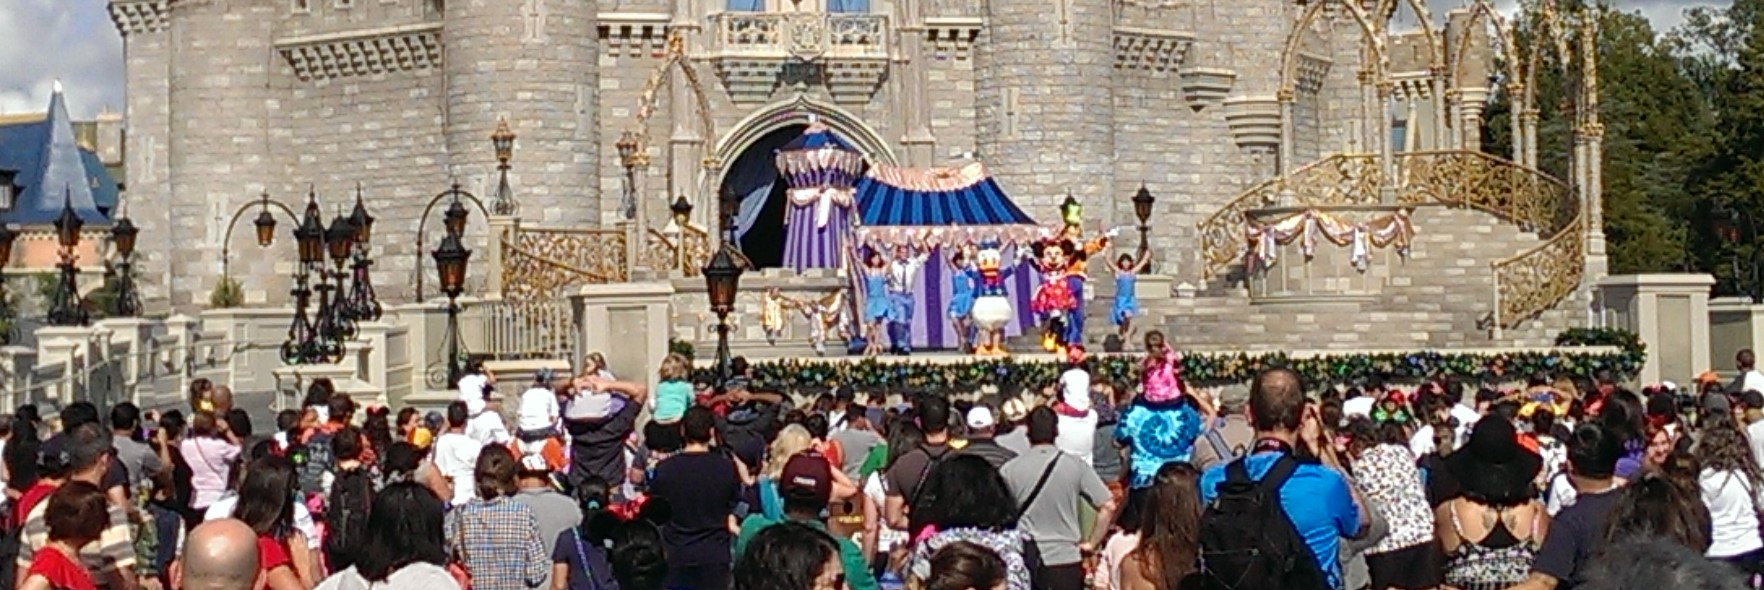 party-cinderella-castle